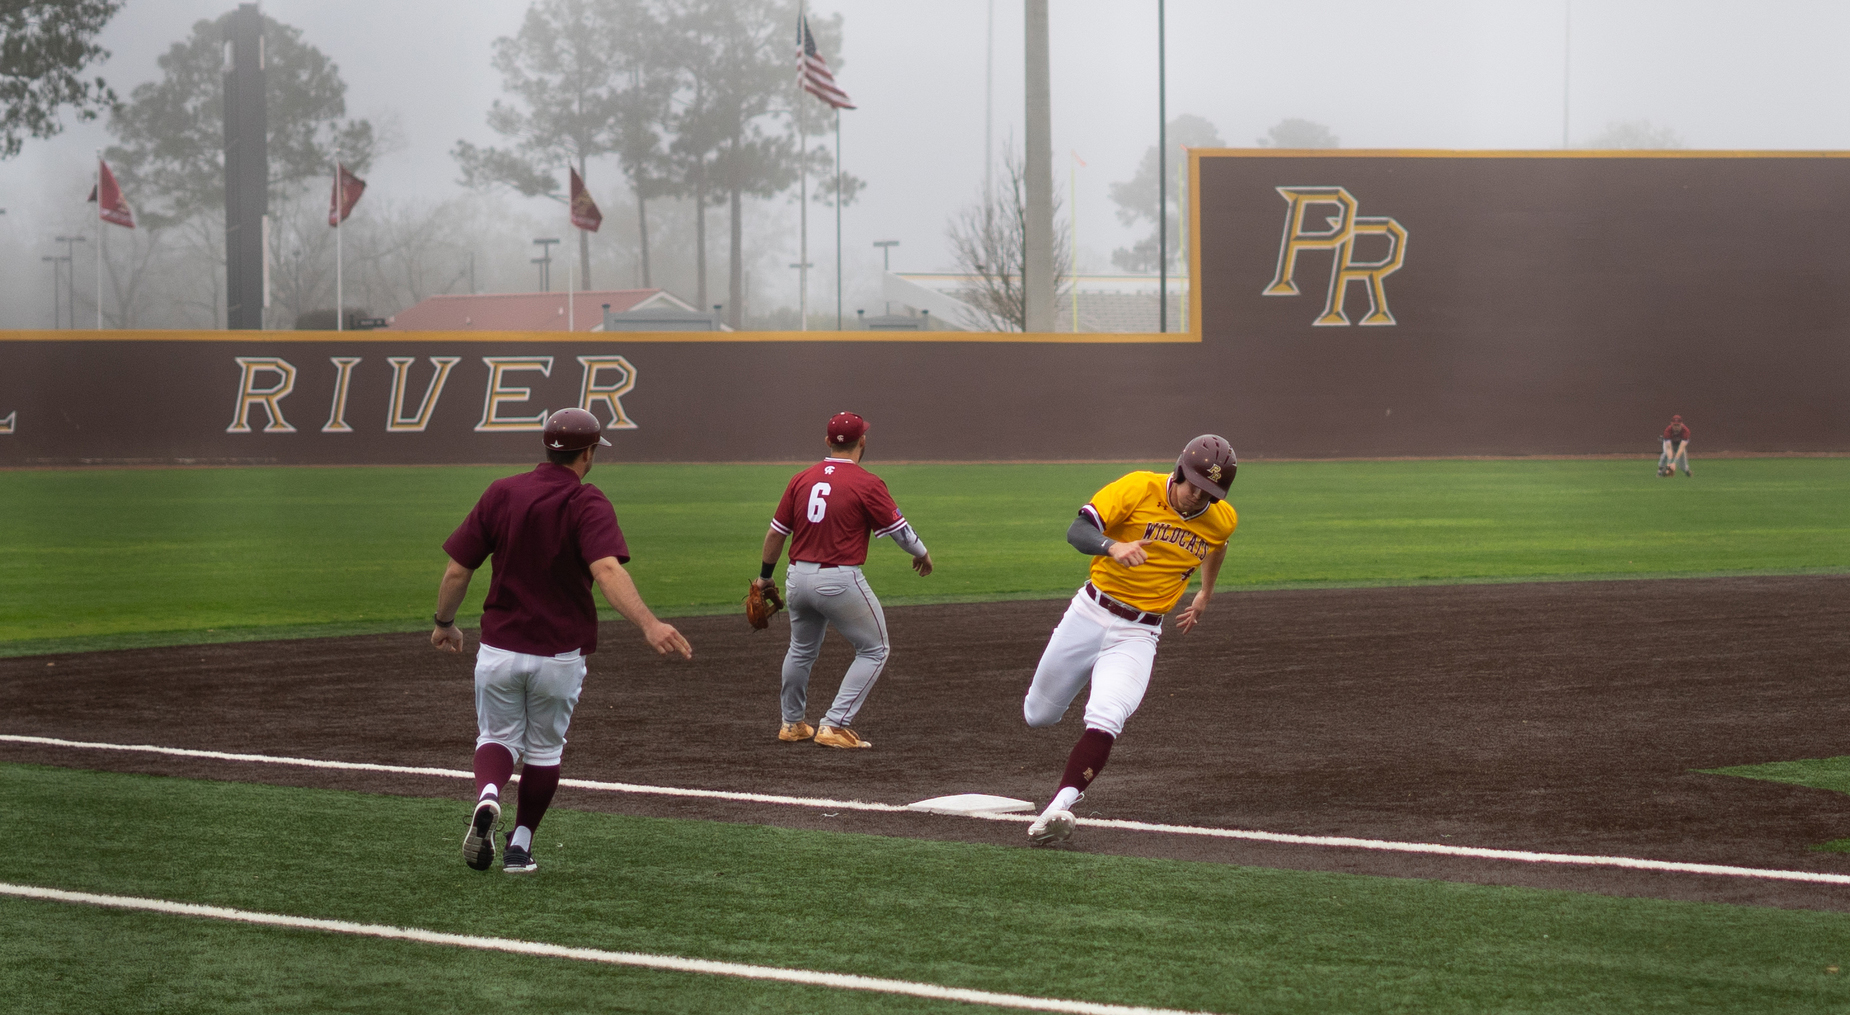 No. 4 Pearl River explodes for 27 runs in home debut